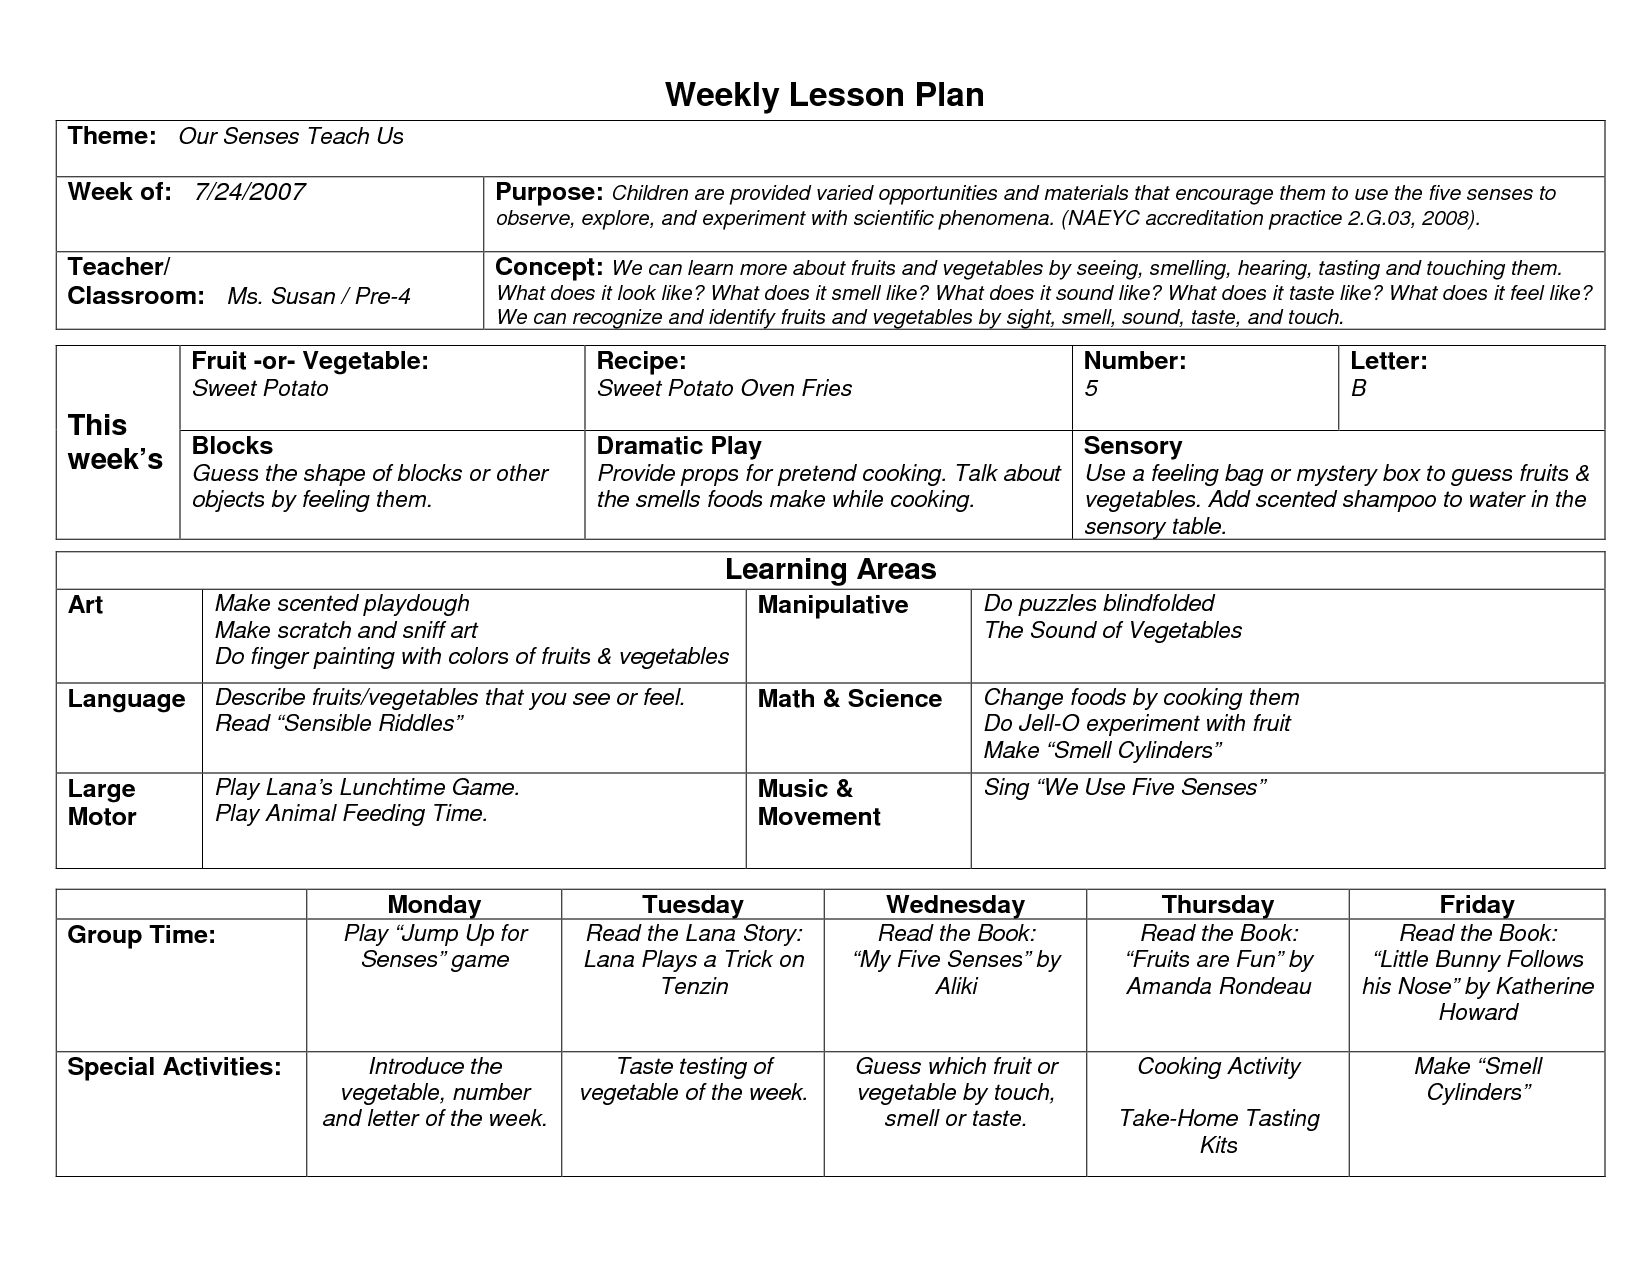 Naeyc lesson plan template for preschool sample weekly lesson plan naeyc lesson plan template for preschool sample weekly lesson plan template fandeluxe